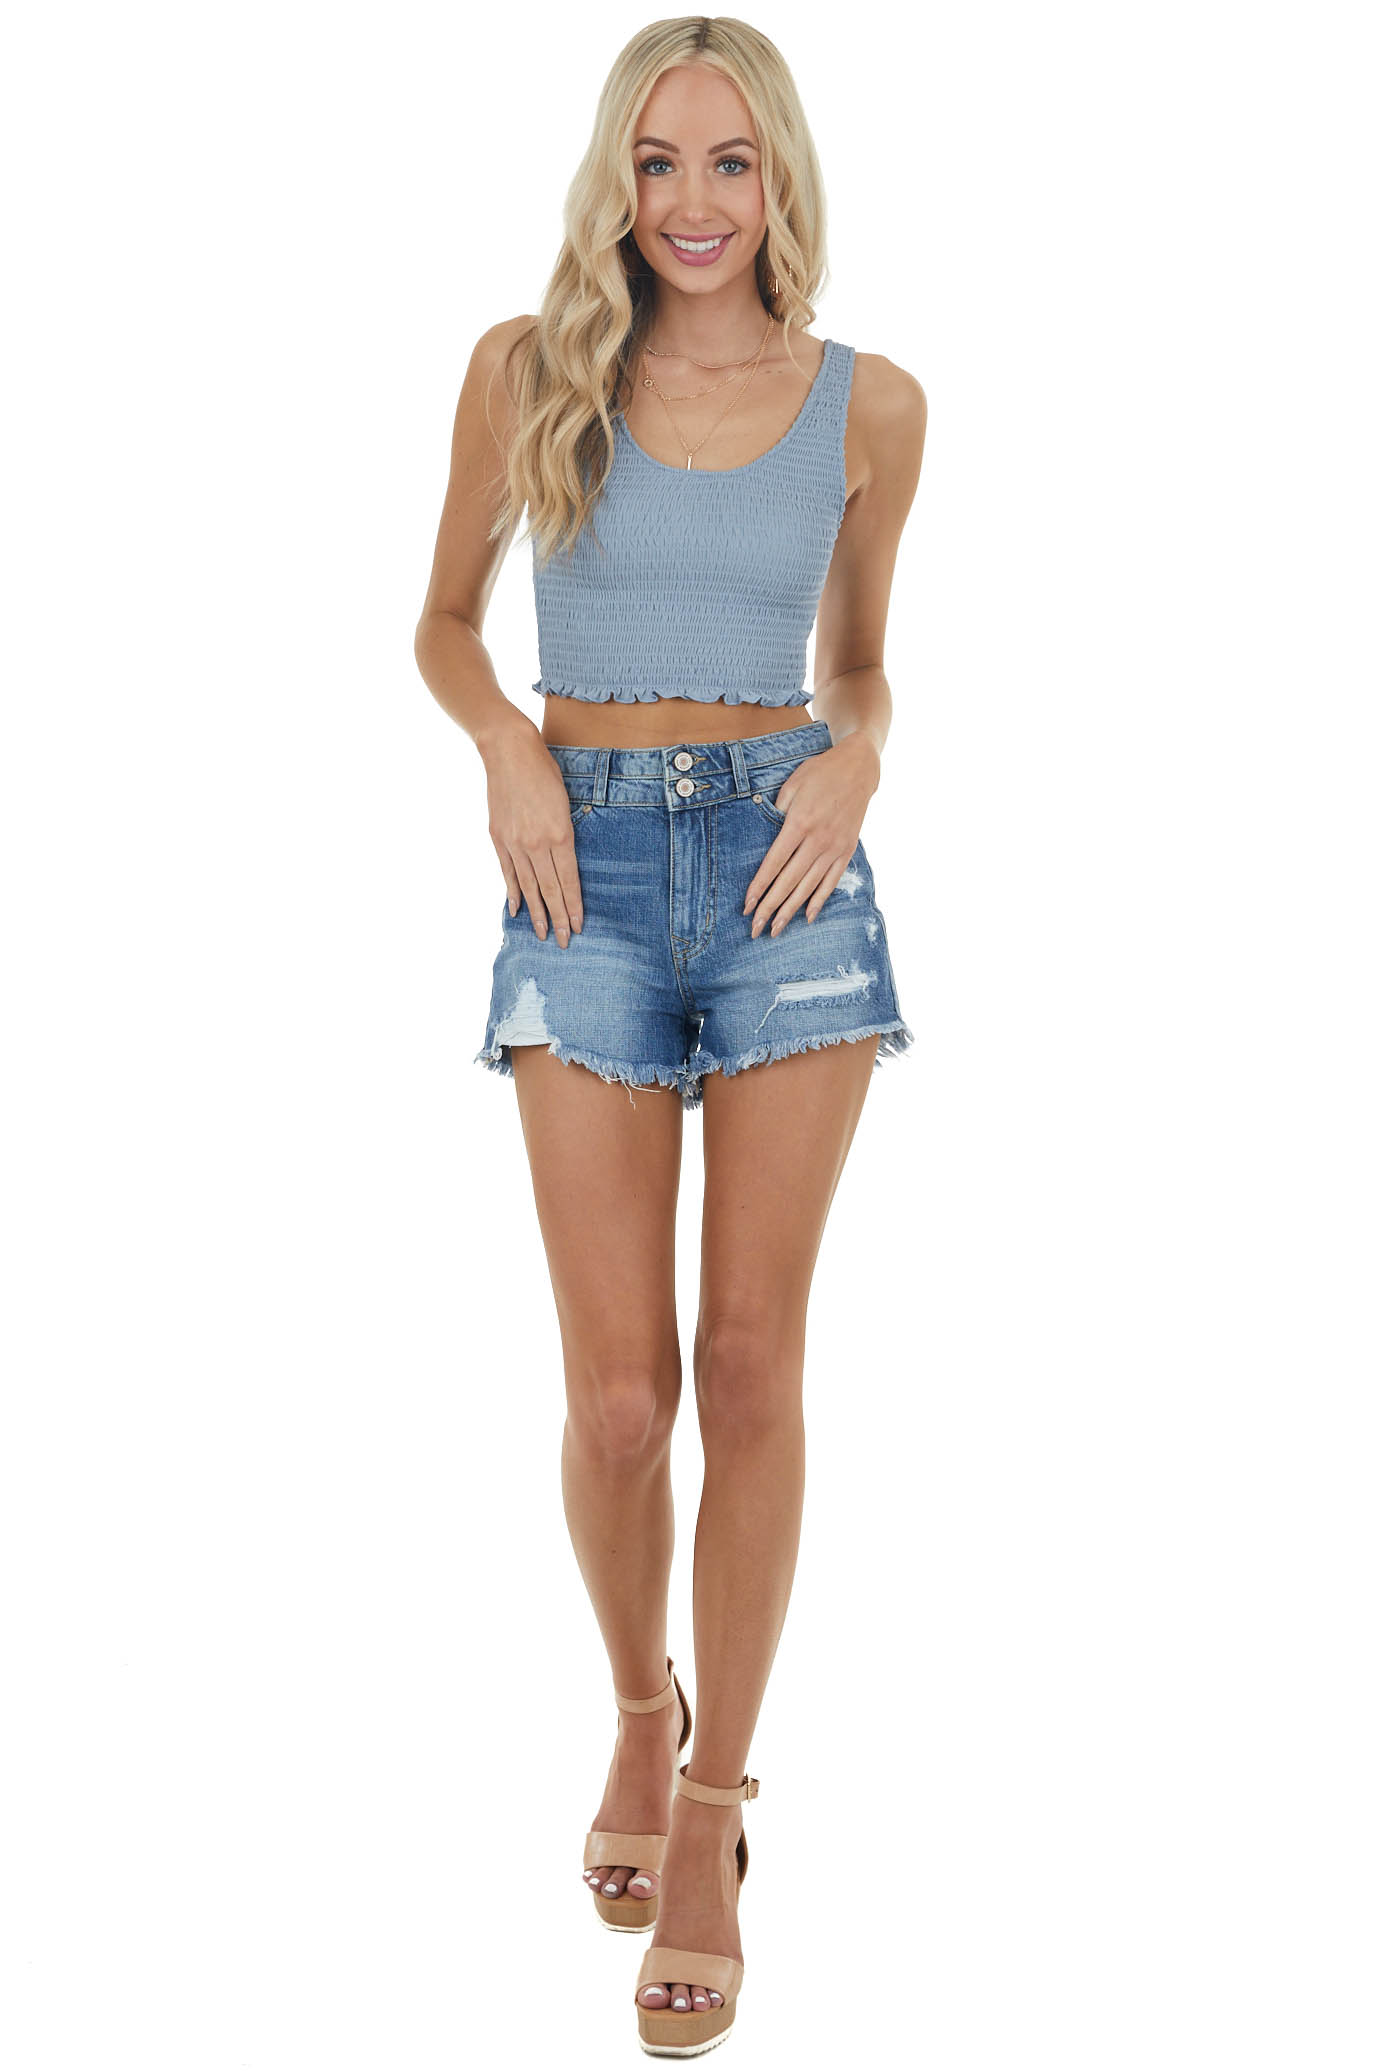 Powder Blue Sleeveless Knit Top with Smocked Details